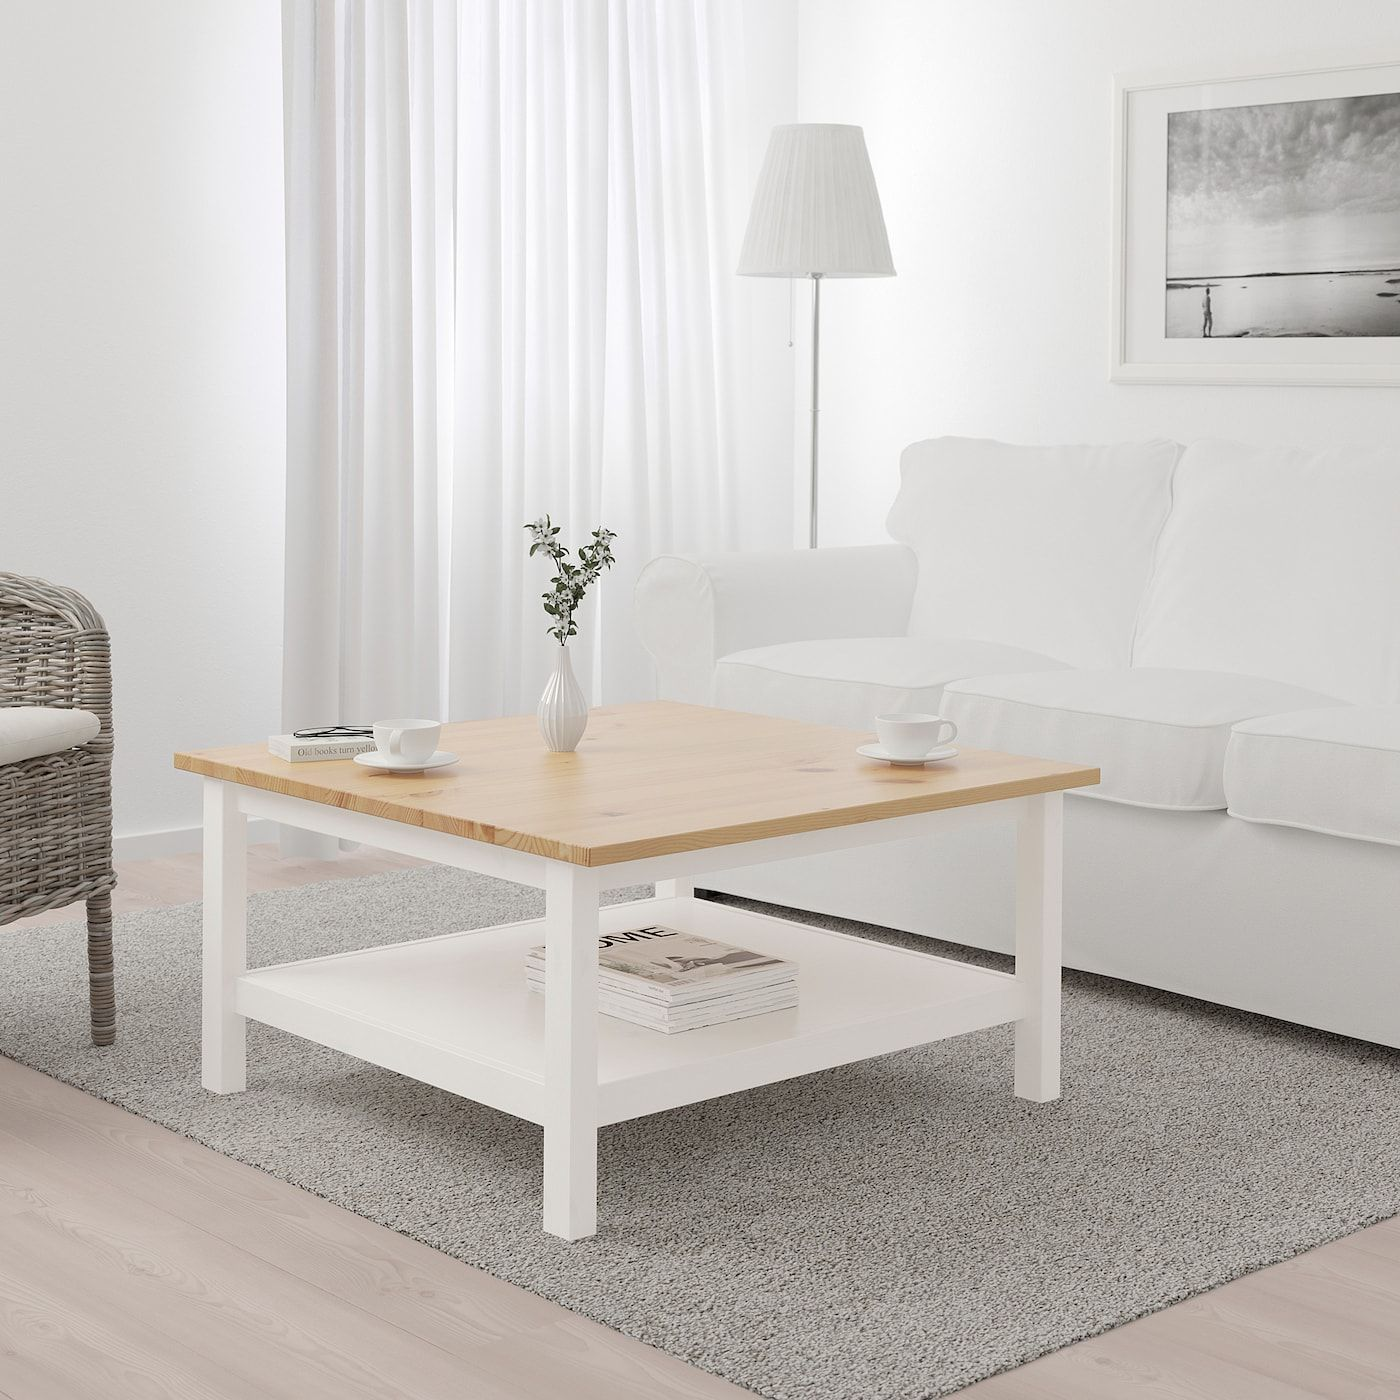 Hemnes Coffee Table White Stain Light Brown 353 8x353 8